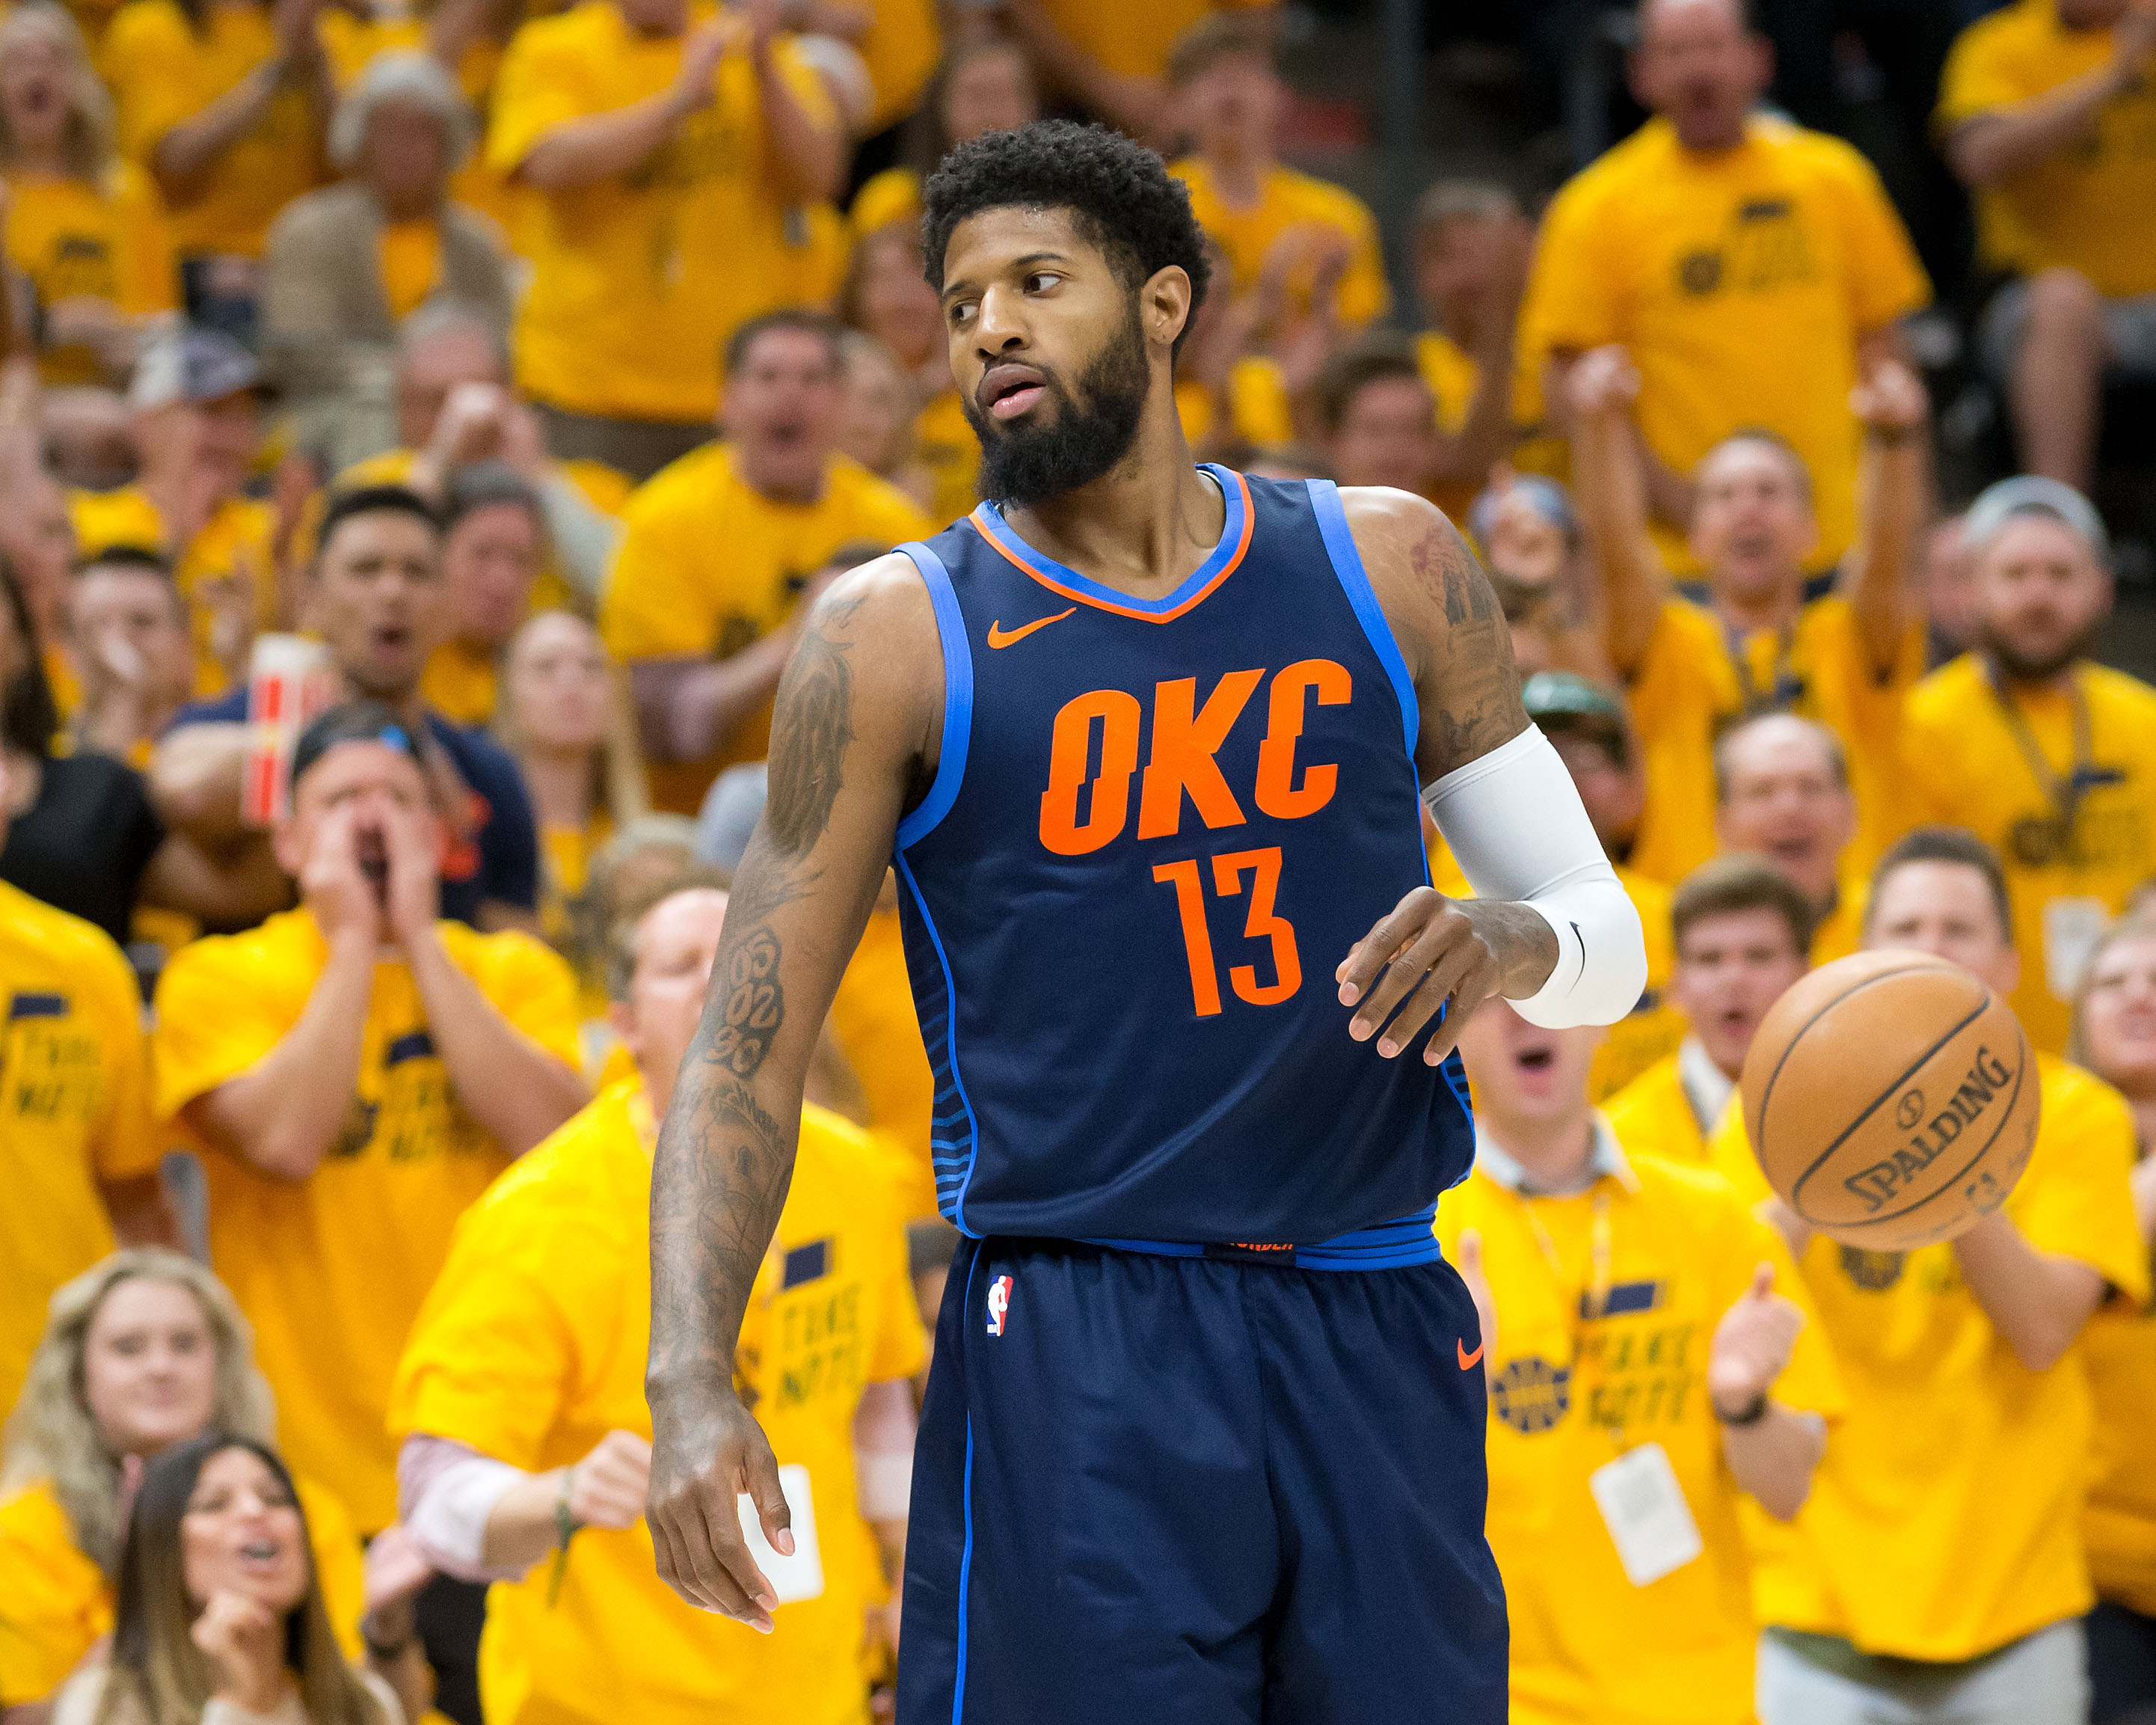 Paul George says he would have joined Lakers if not for trade to Thunder